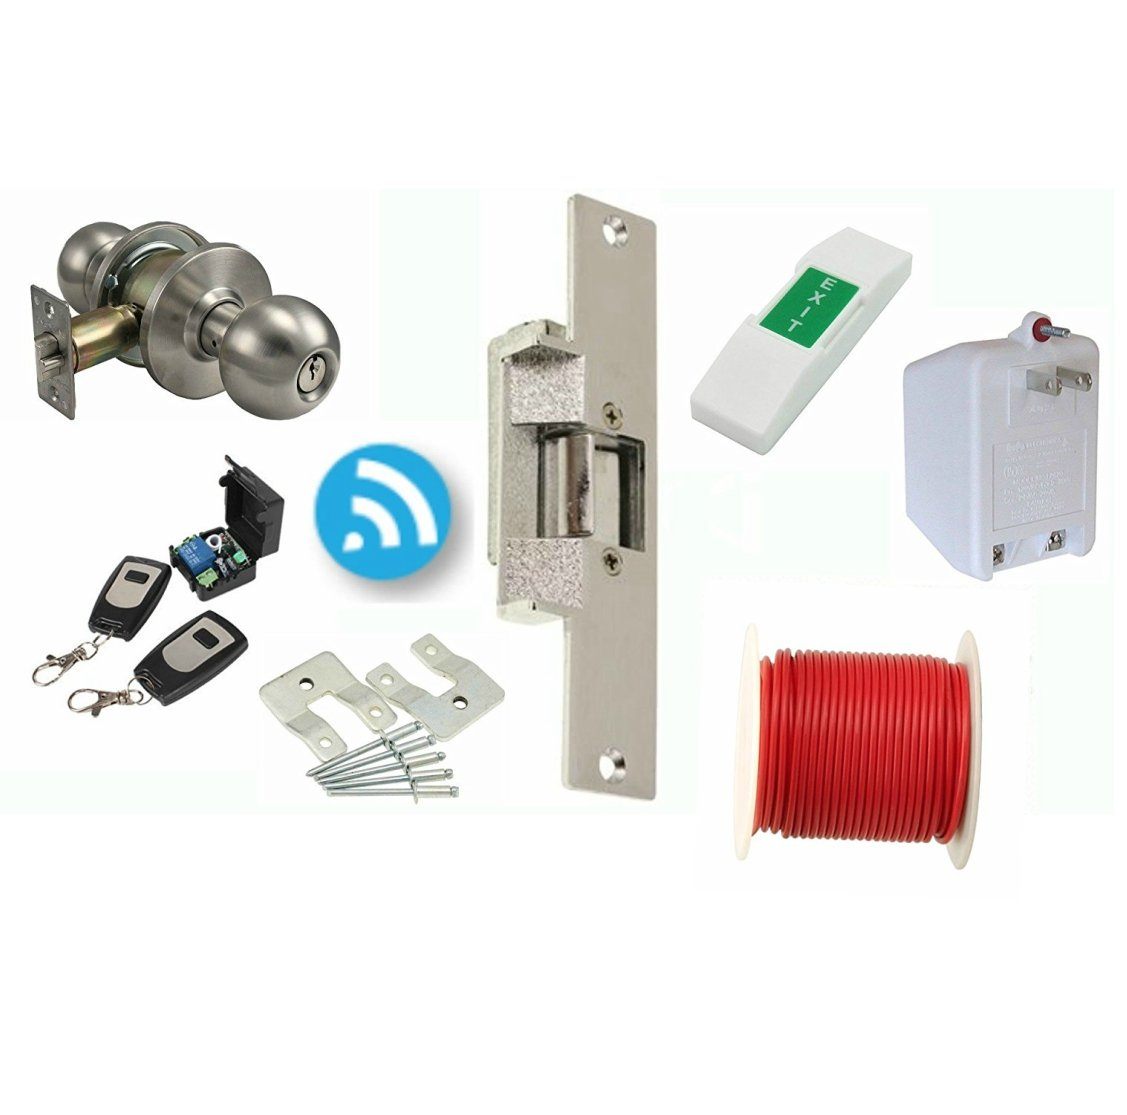 amazoncom electric strike door lock and wireless remote kit 14dlc